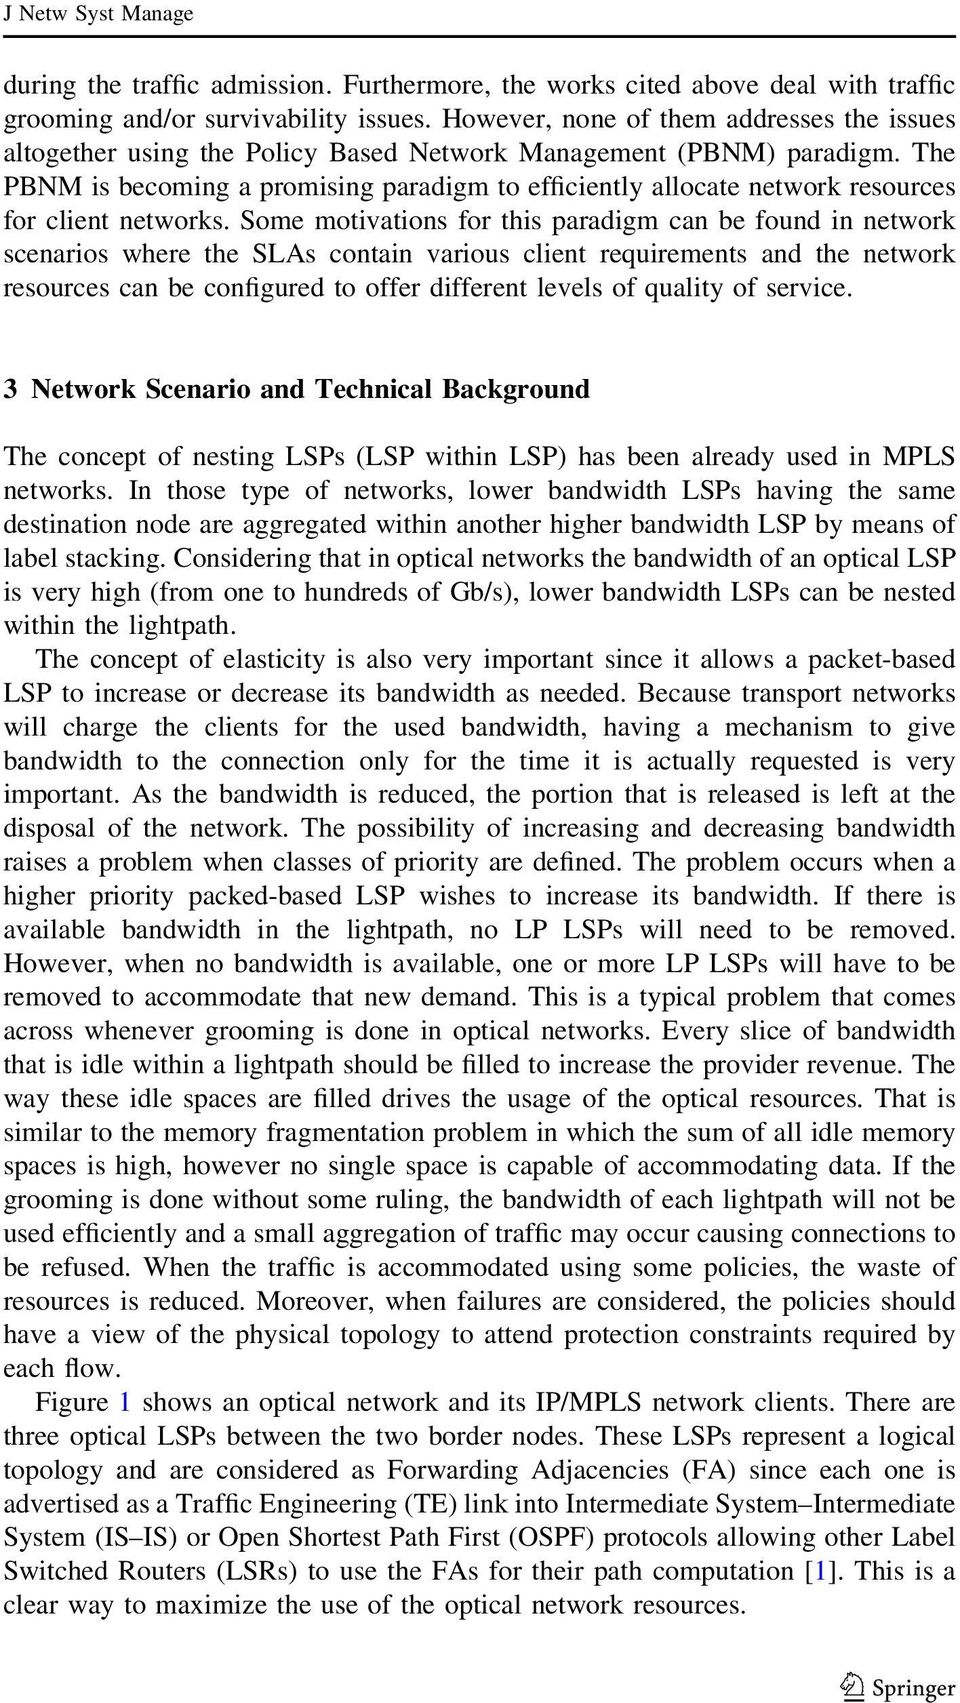 The PBNM is becoming a promising paradigm to efficiently allocate network resources for client networks.